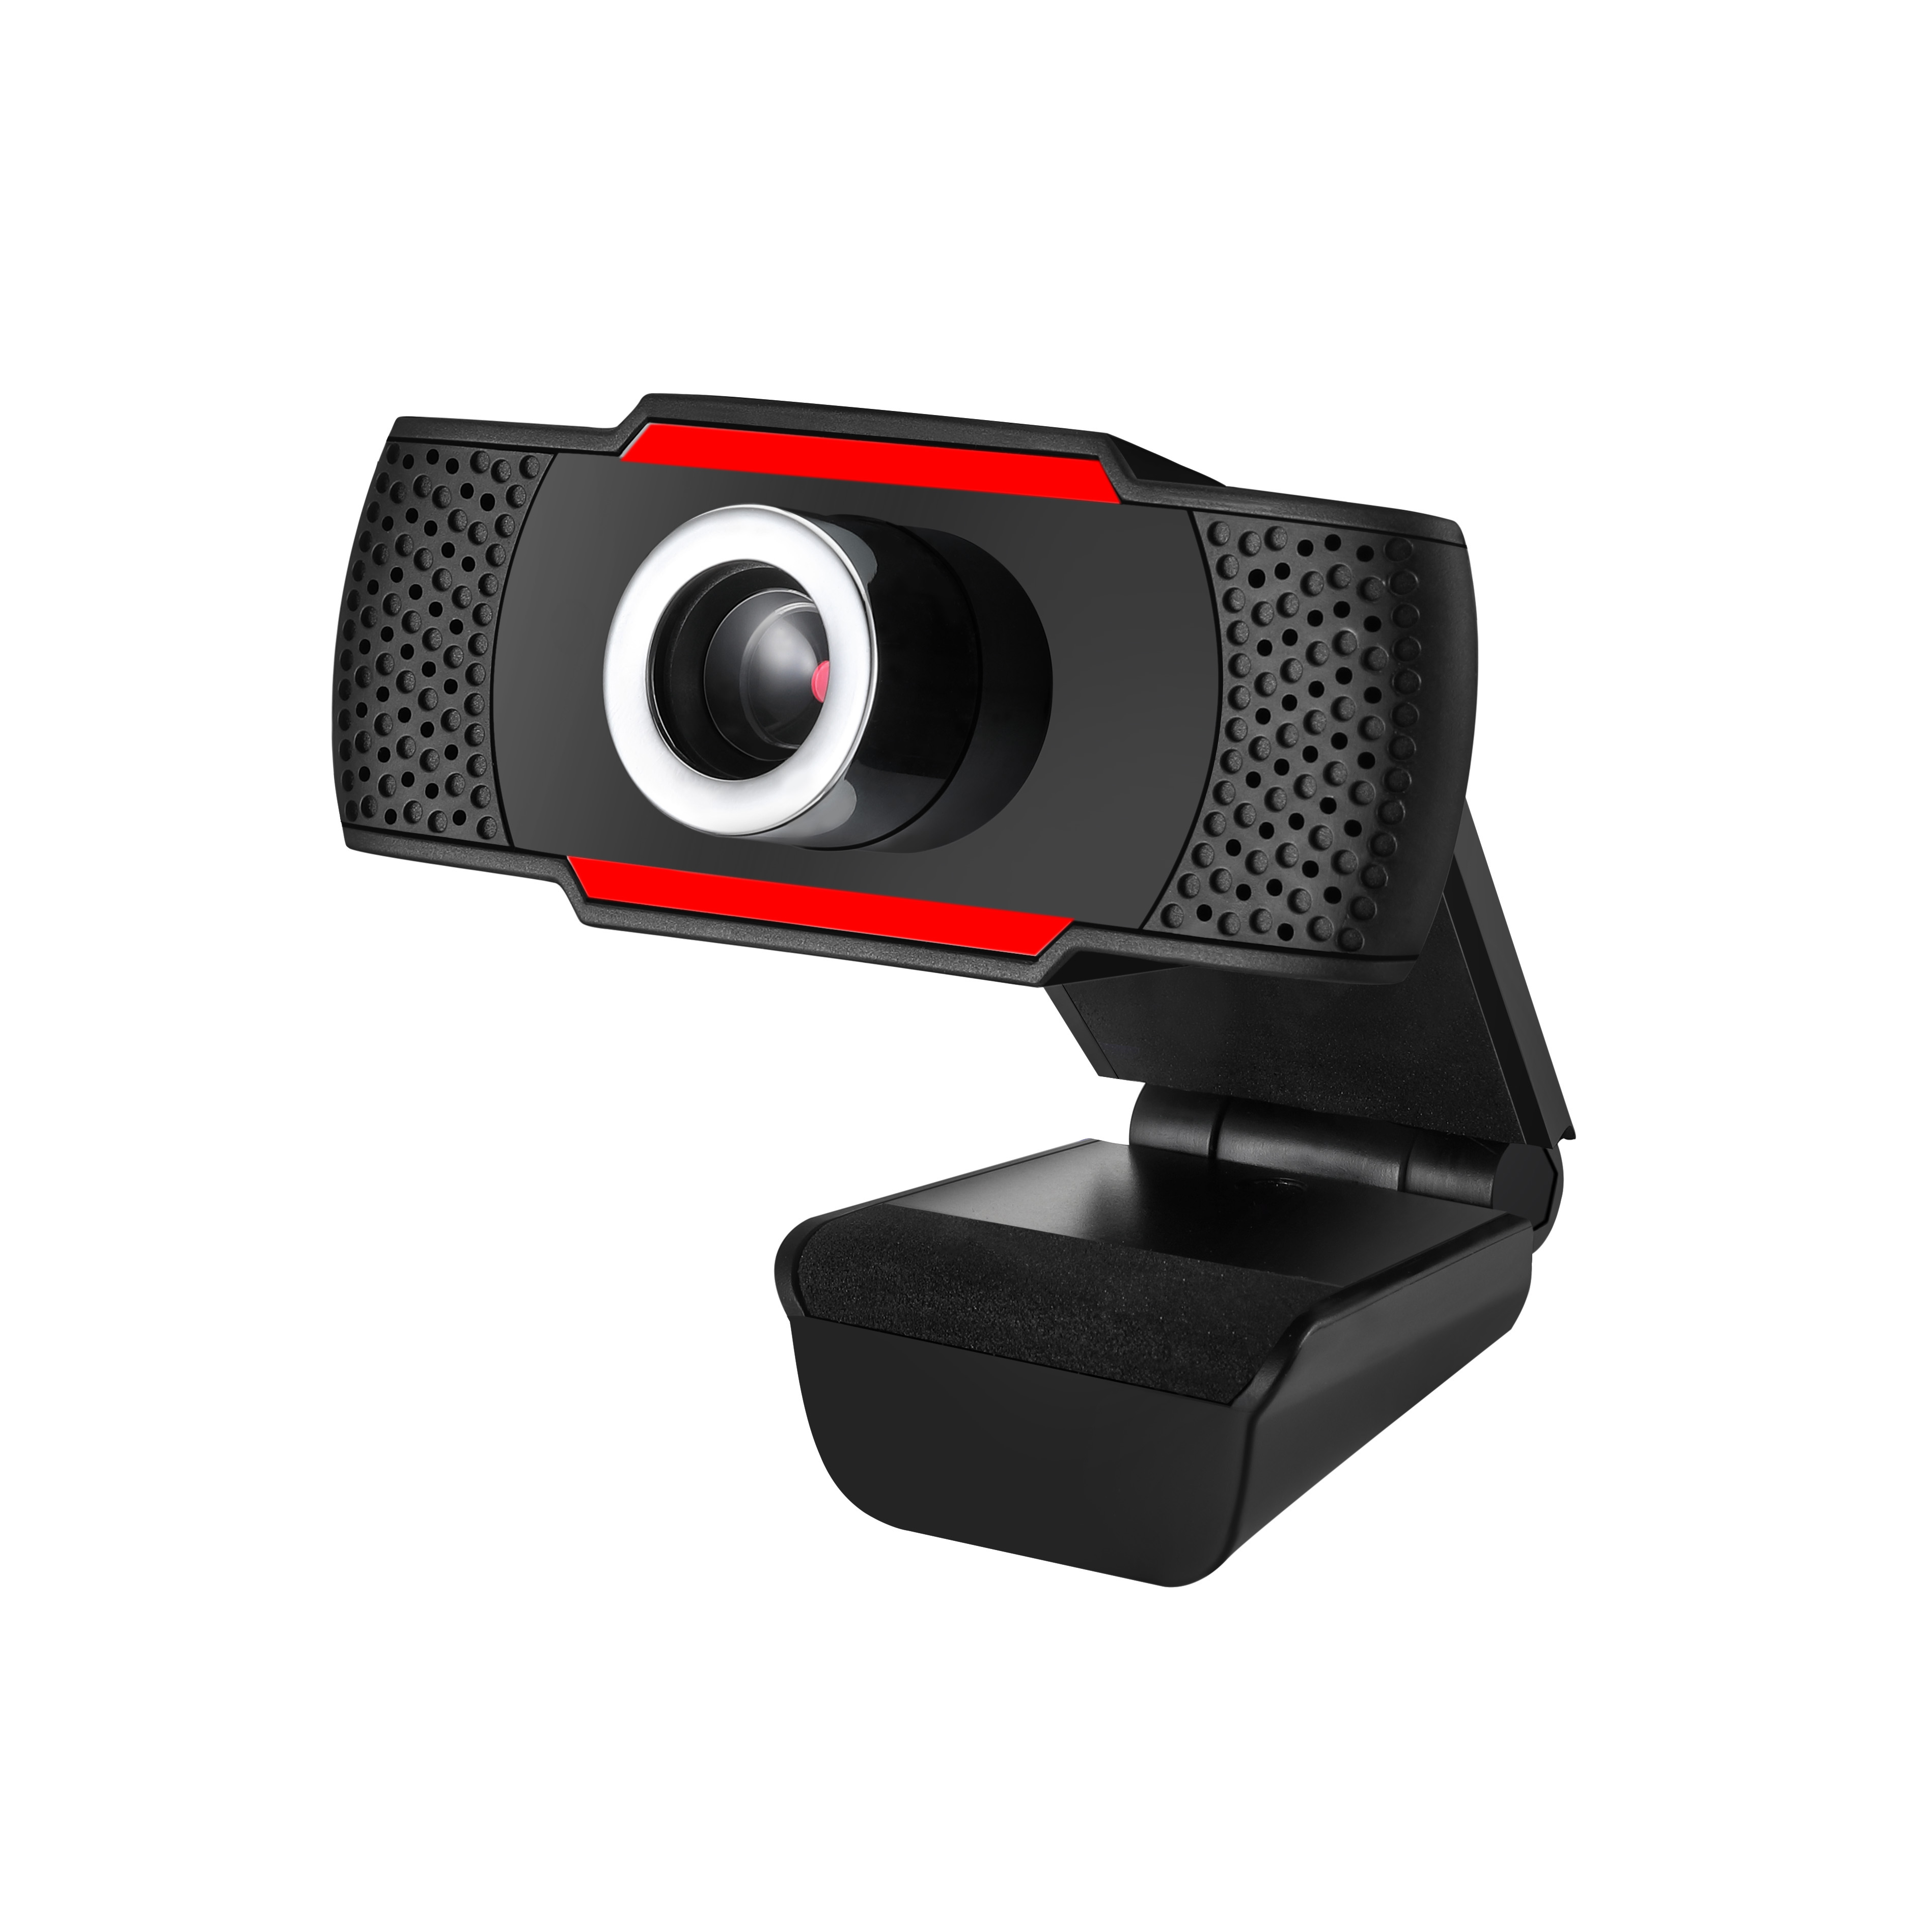 720p Hd Usb Webcam With Built In Microphone Adesso Inc Your